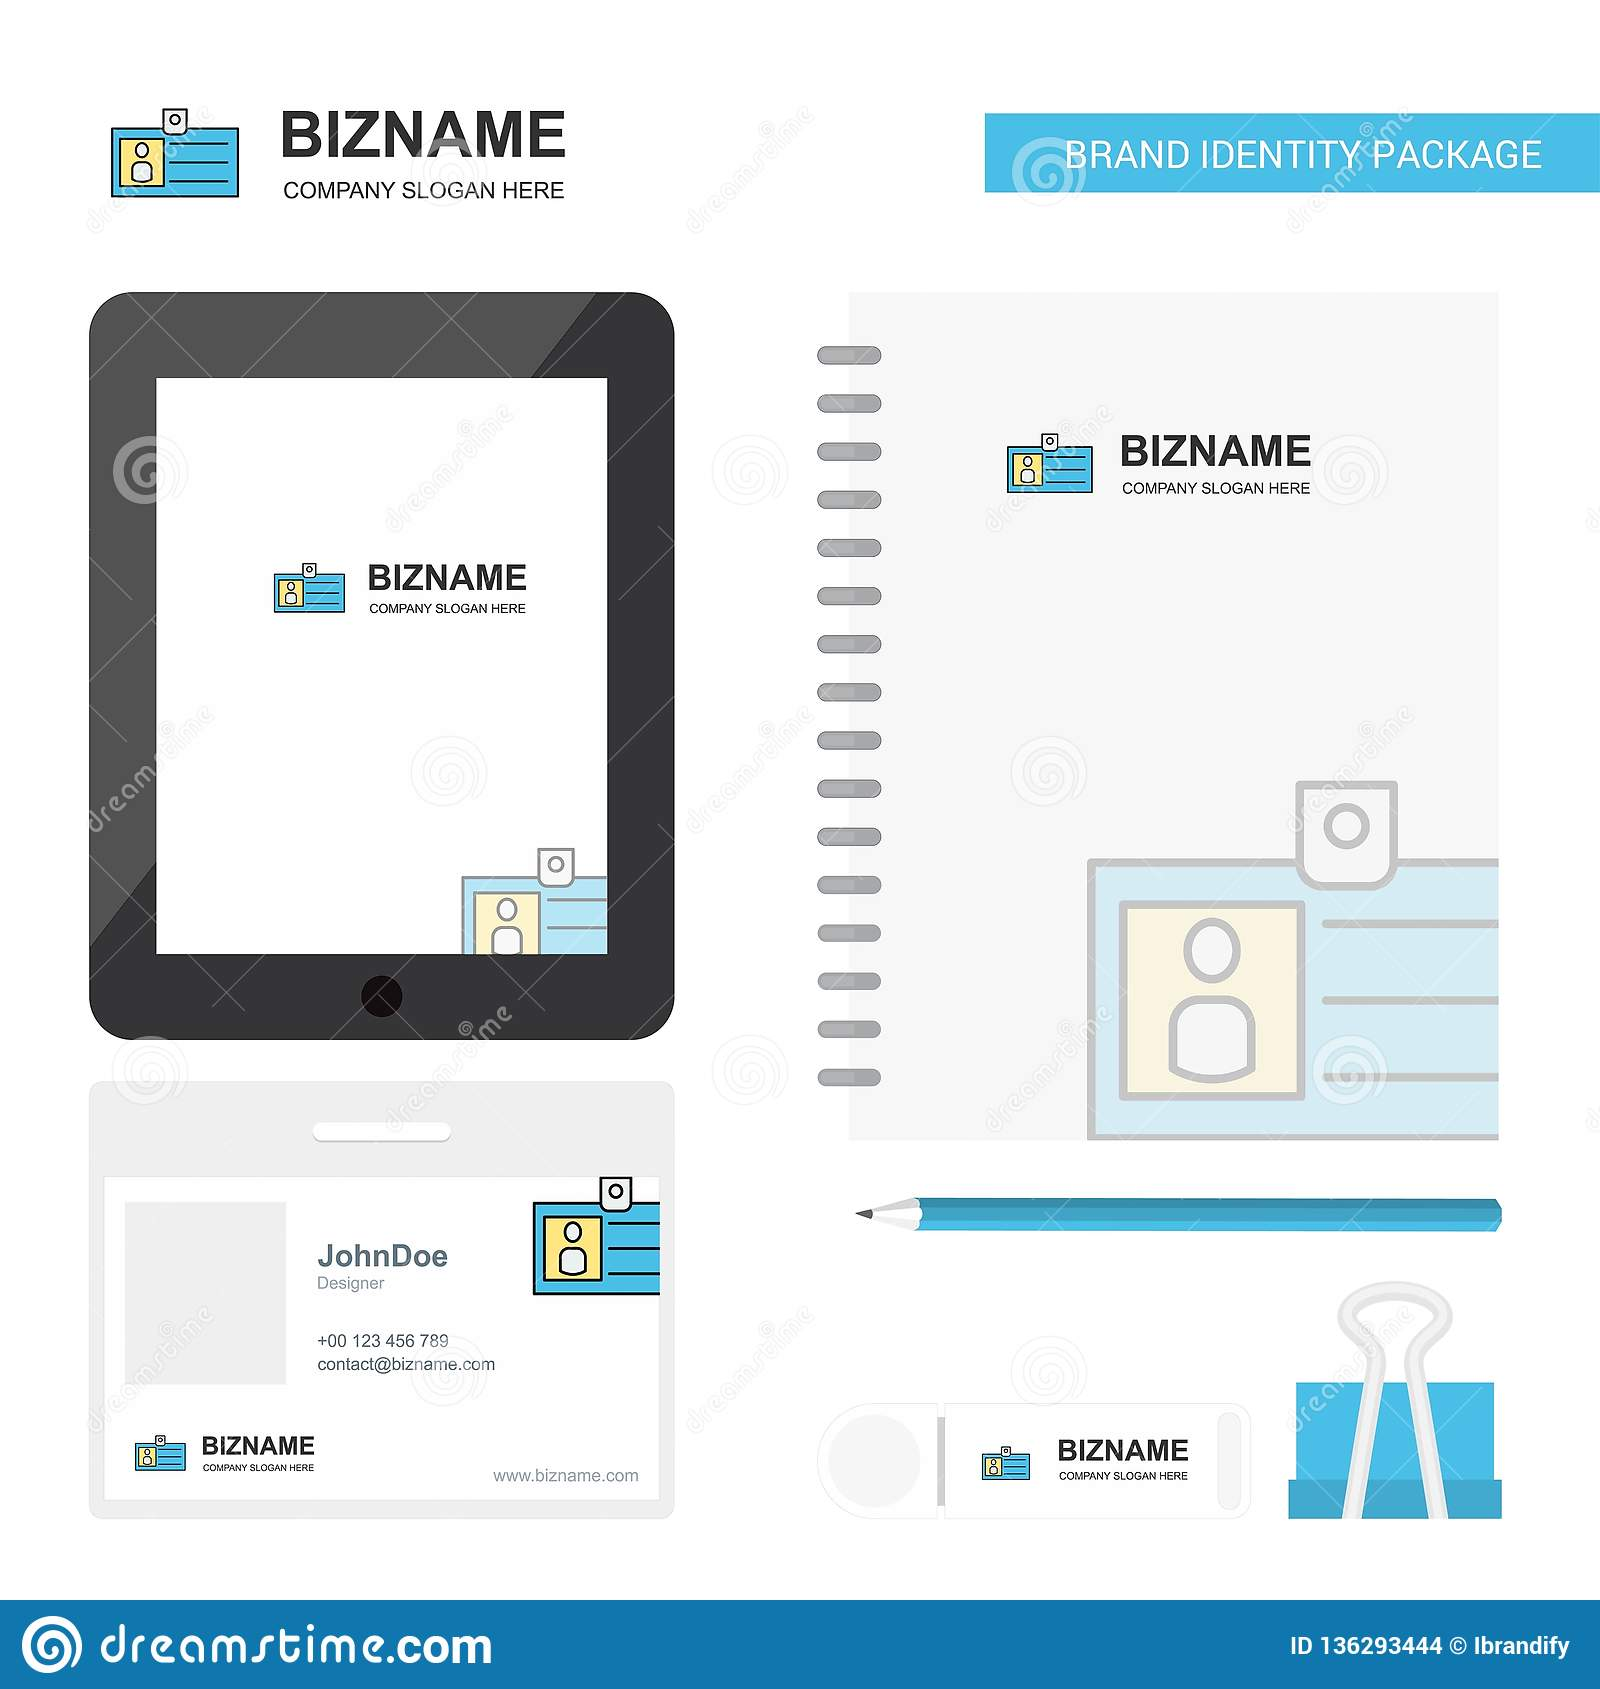 Id Card Business Logo Tab App Diary Pvc Employee Card And Usb Brand Stationary Package Design Vector Template Stock Vector Illustration Of Identity Business 136293444